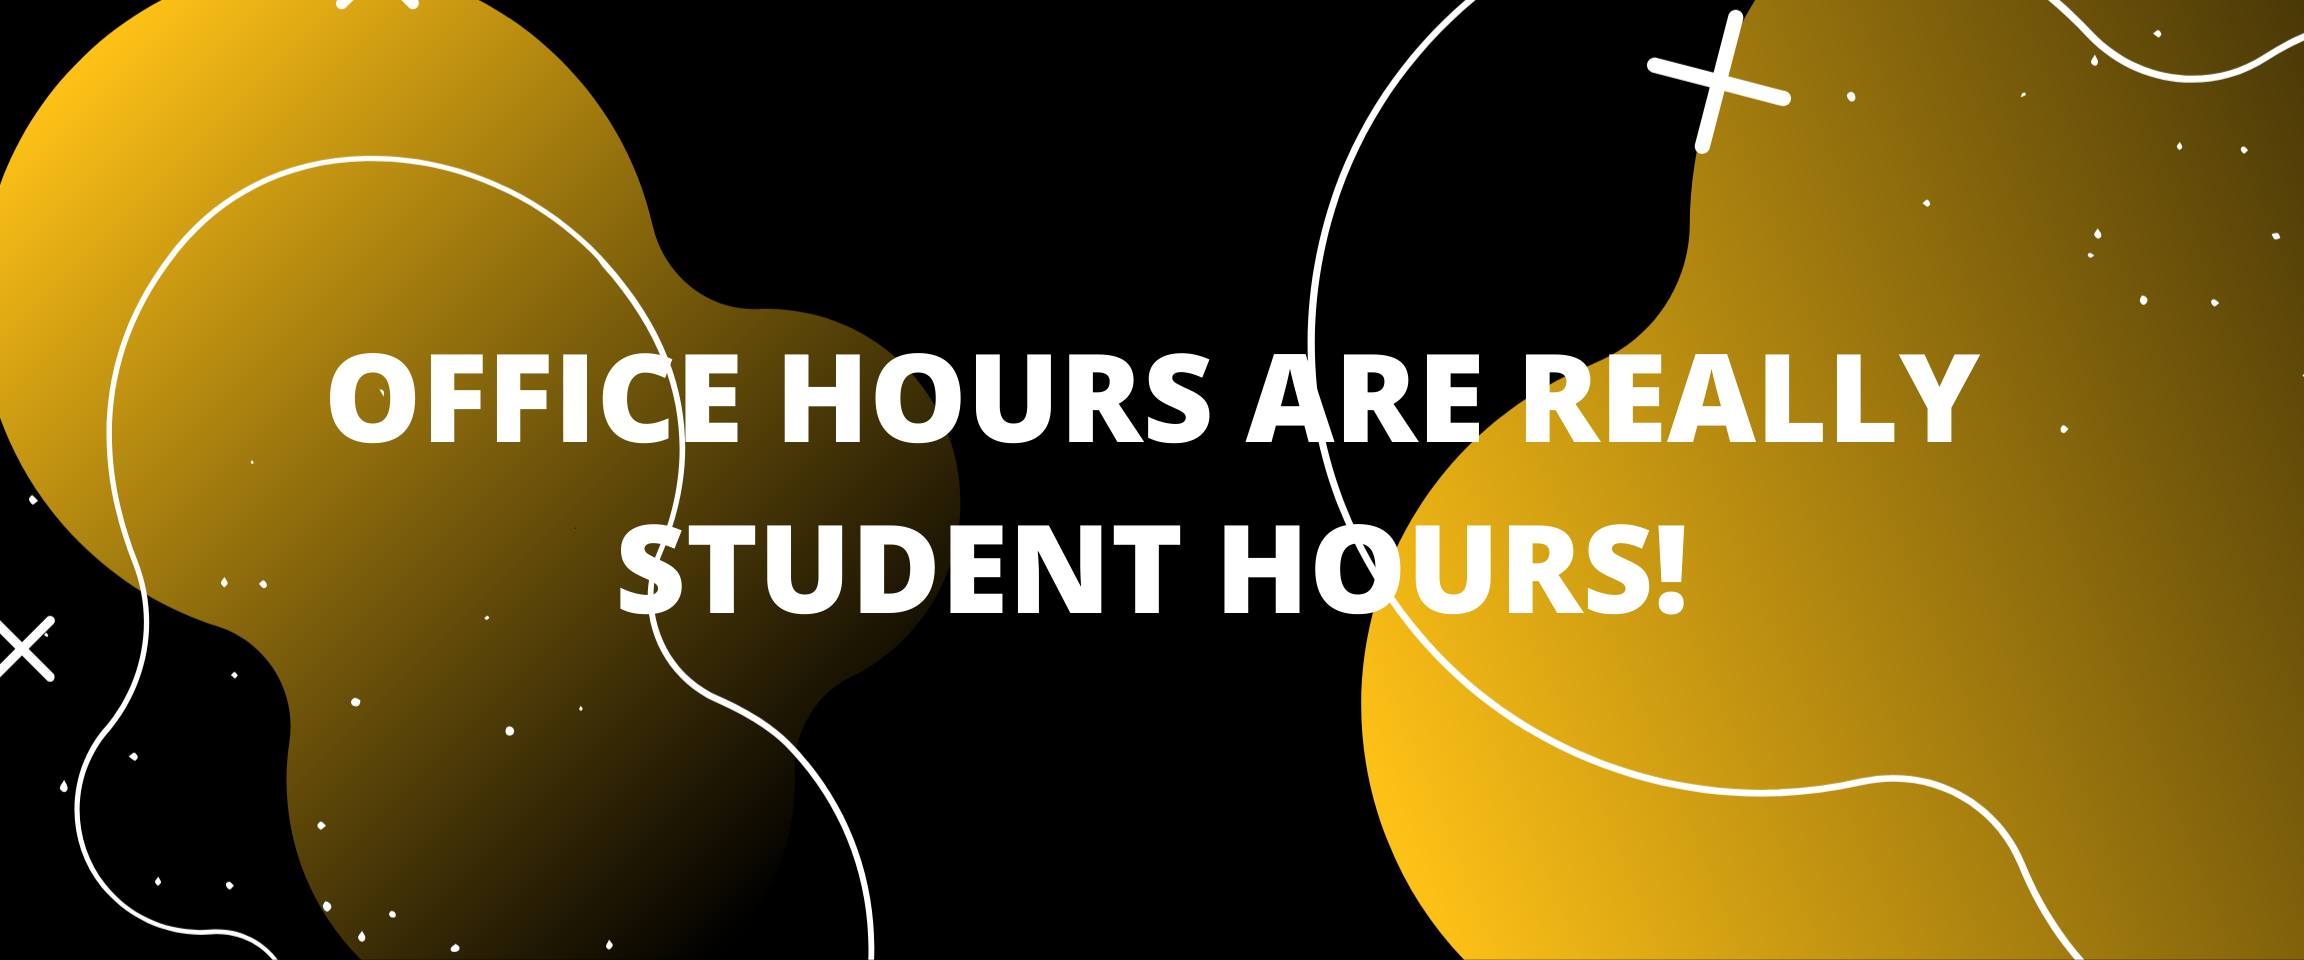 OFFICE HOURS ARE REALLY STUDENT HOURS!